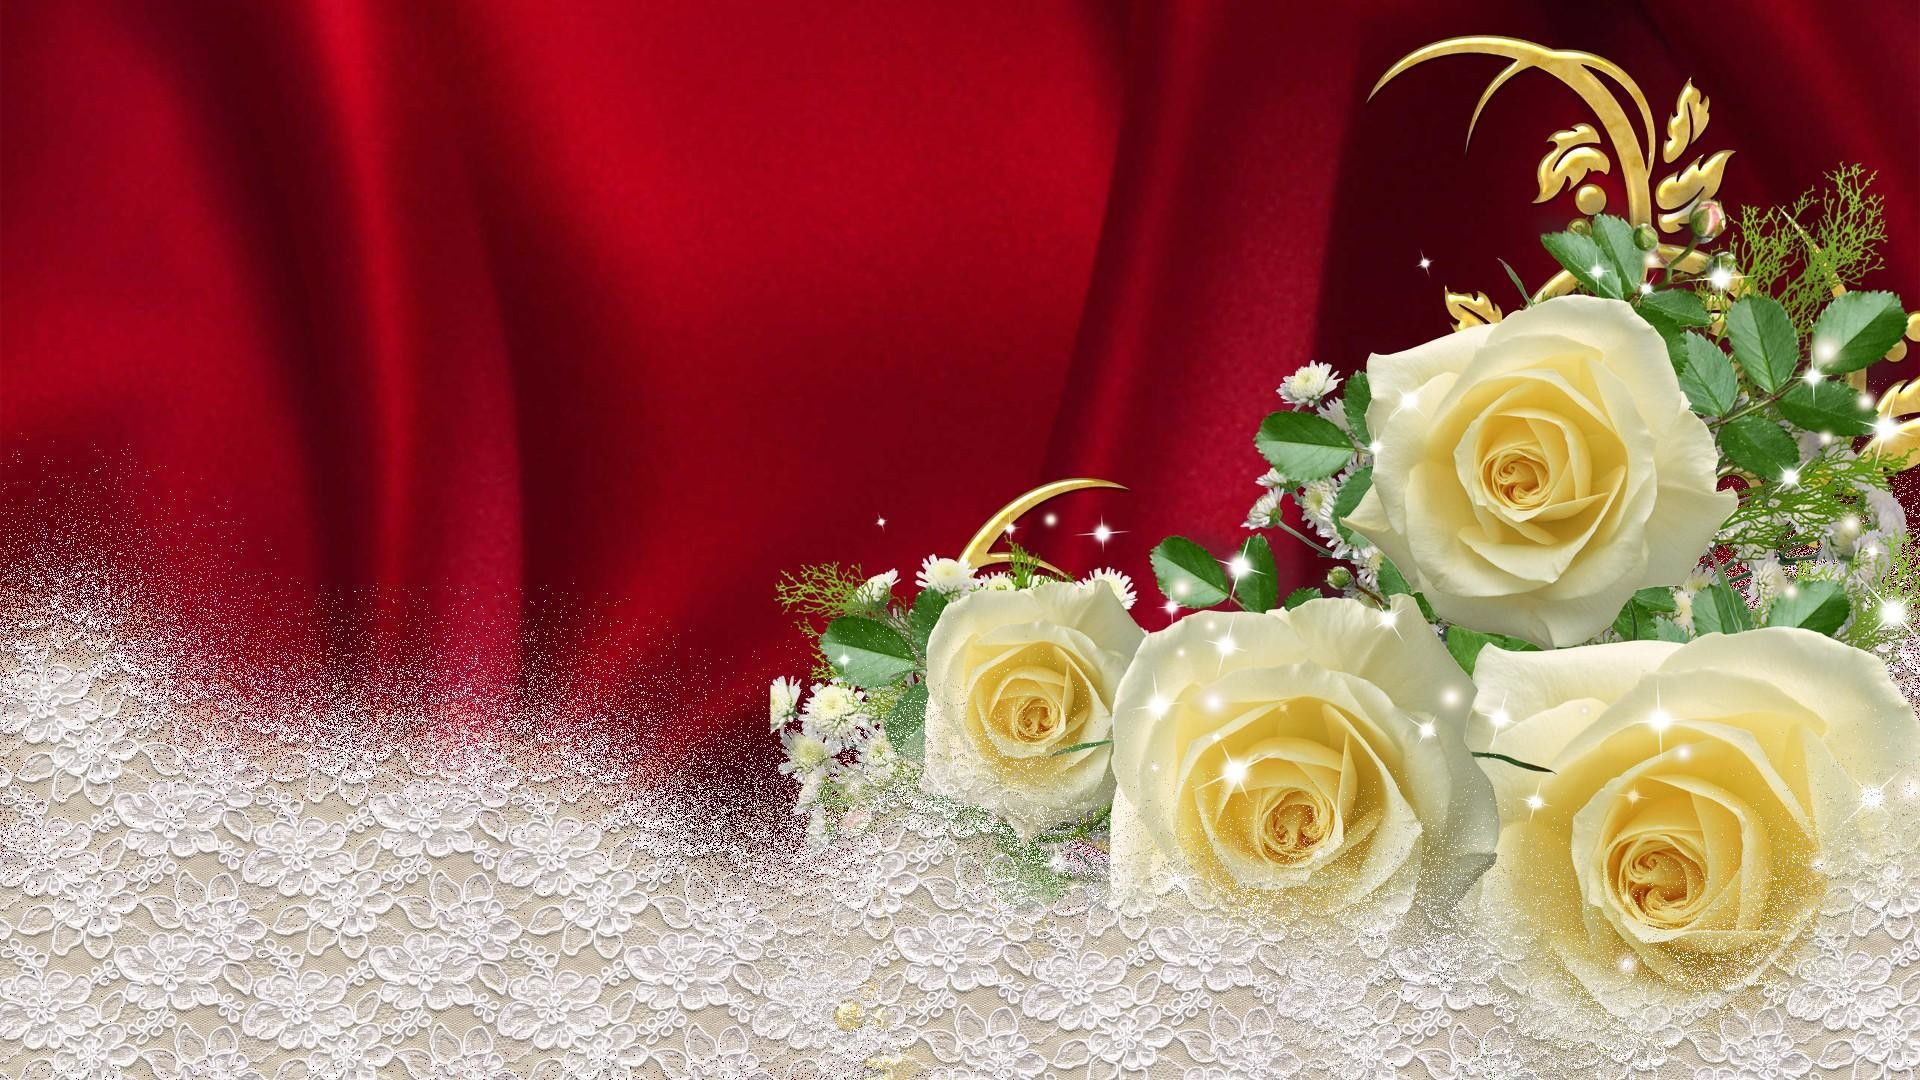 Res: 1920x1080, Yellow Roses On Red Satin